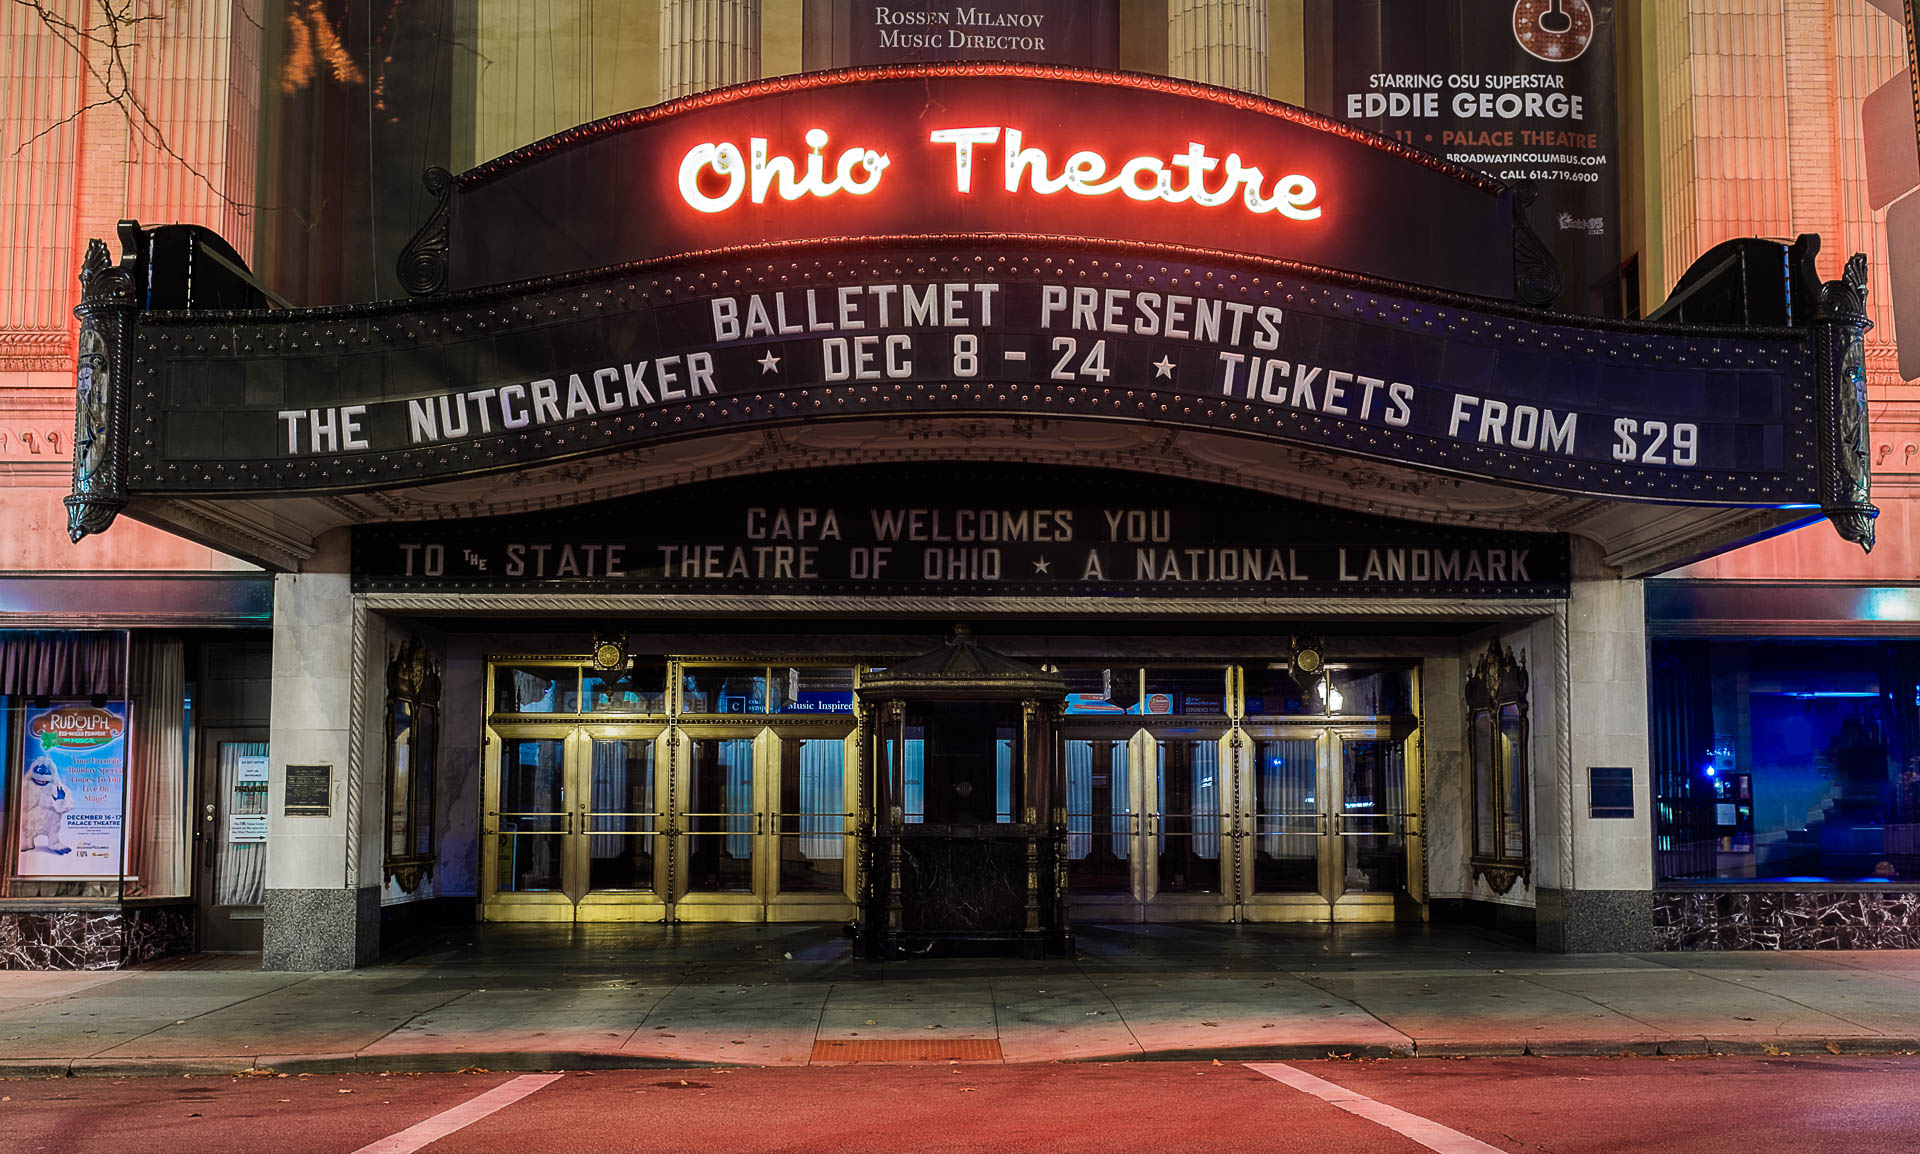 Ohio Theatre Nut Cracker-.jpg